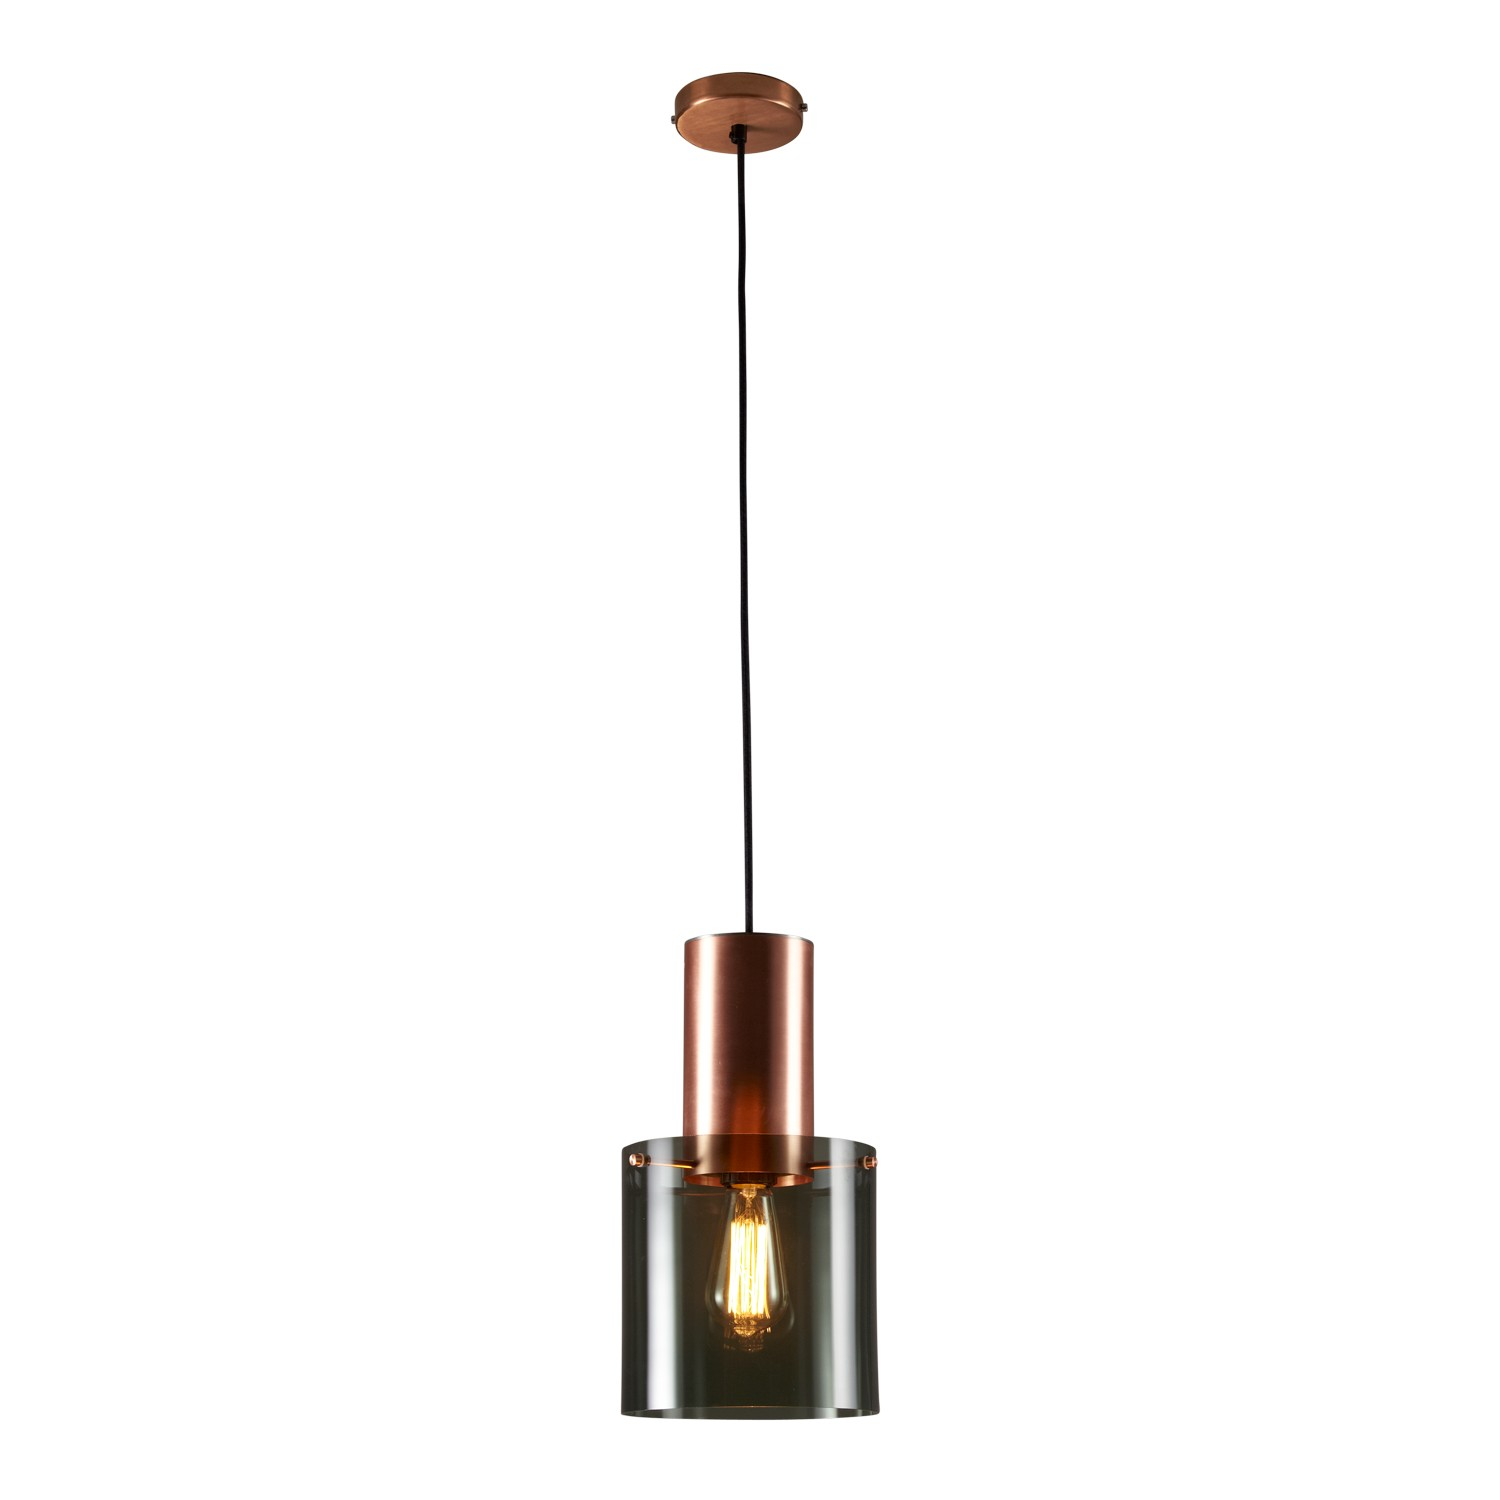 Walter Pendant Light Anthracite Glass & Copper, Large